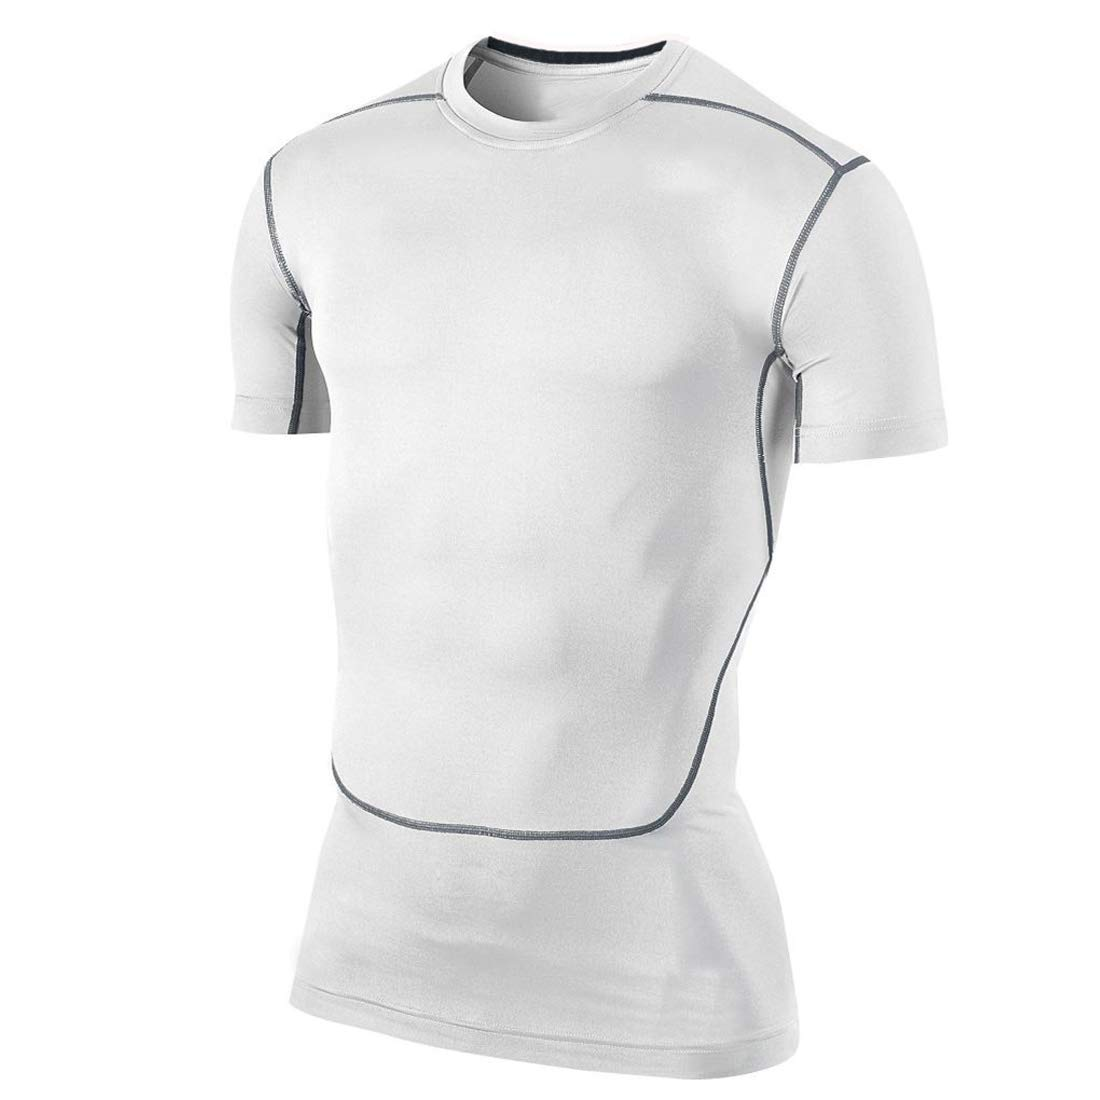 Men's Compression Shirts Training Top Short Sleeve Cool Dry Base Layer Undershirts